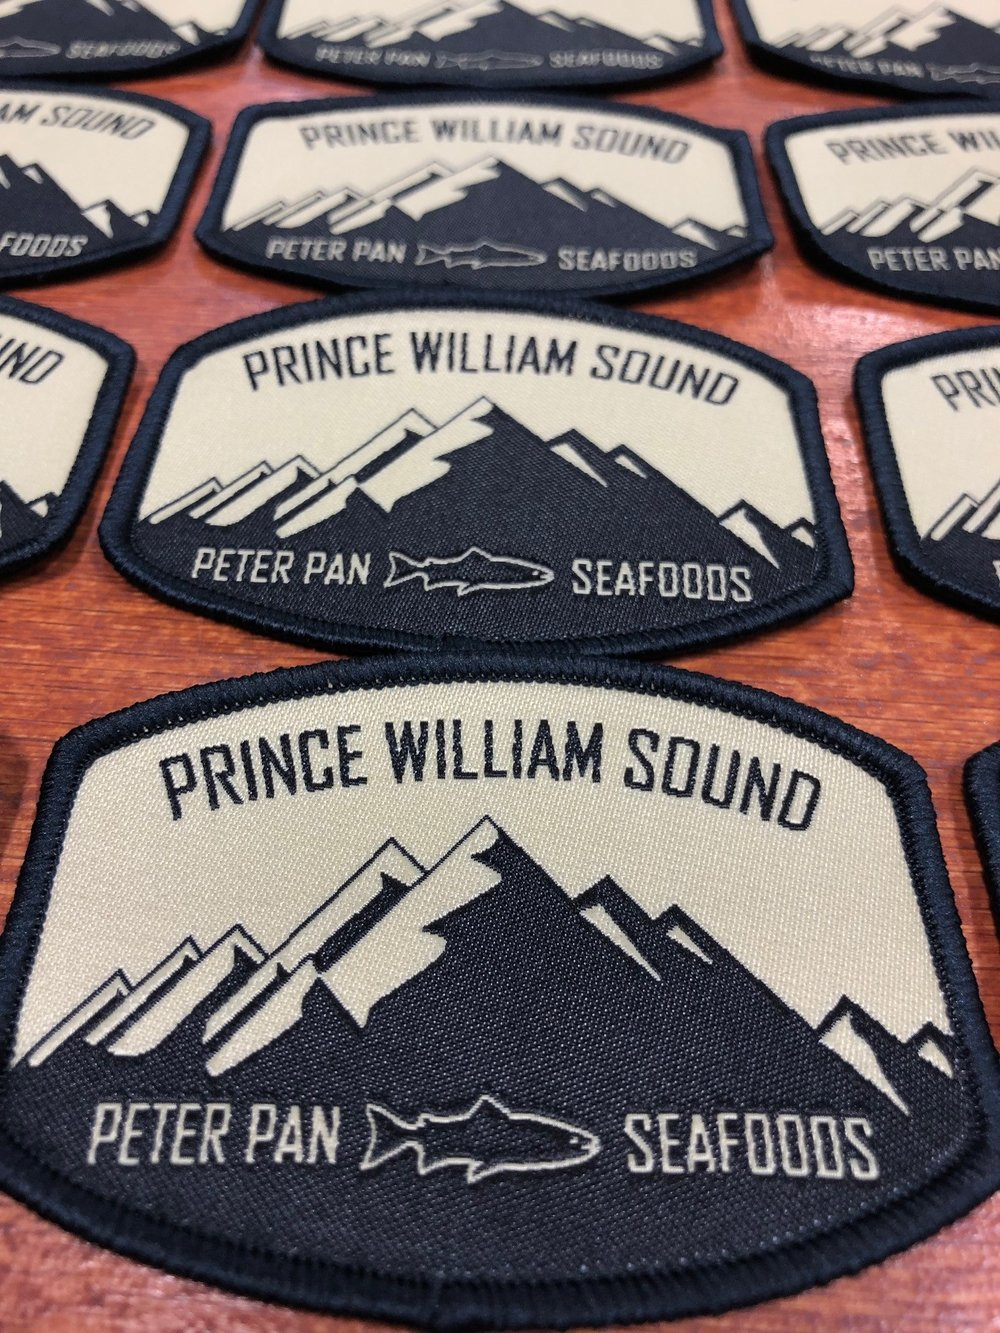 logounltd_laser_etching_embroidery_screen_printing_apparel_uniform_custom_tshirts_kirkland_bellevue_seattle_redmond_woodinville_branded_merchandise_promotional_products_logo_unltd_woven_patches_peter_pan_seafoods  (2).jpg